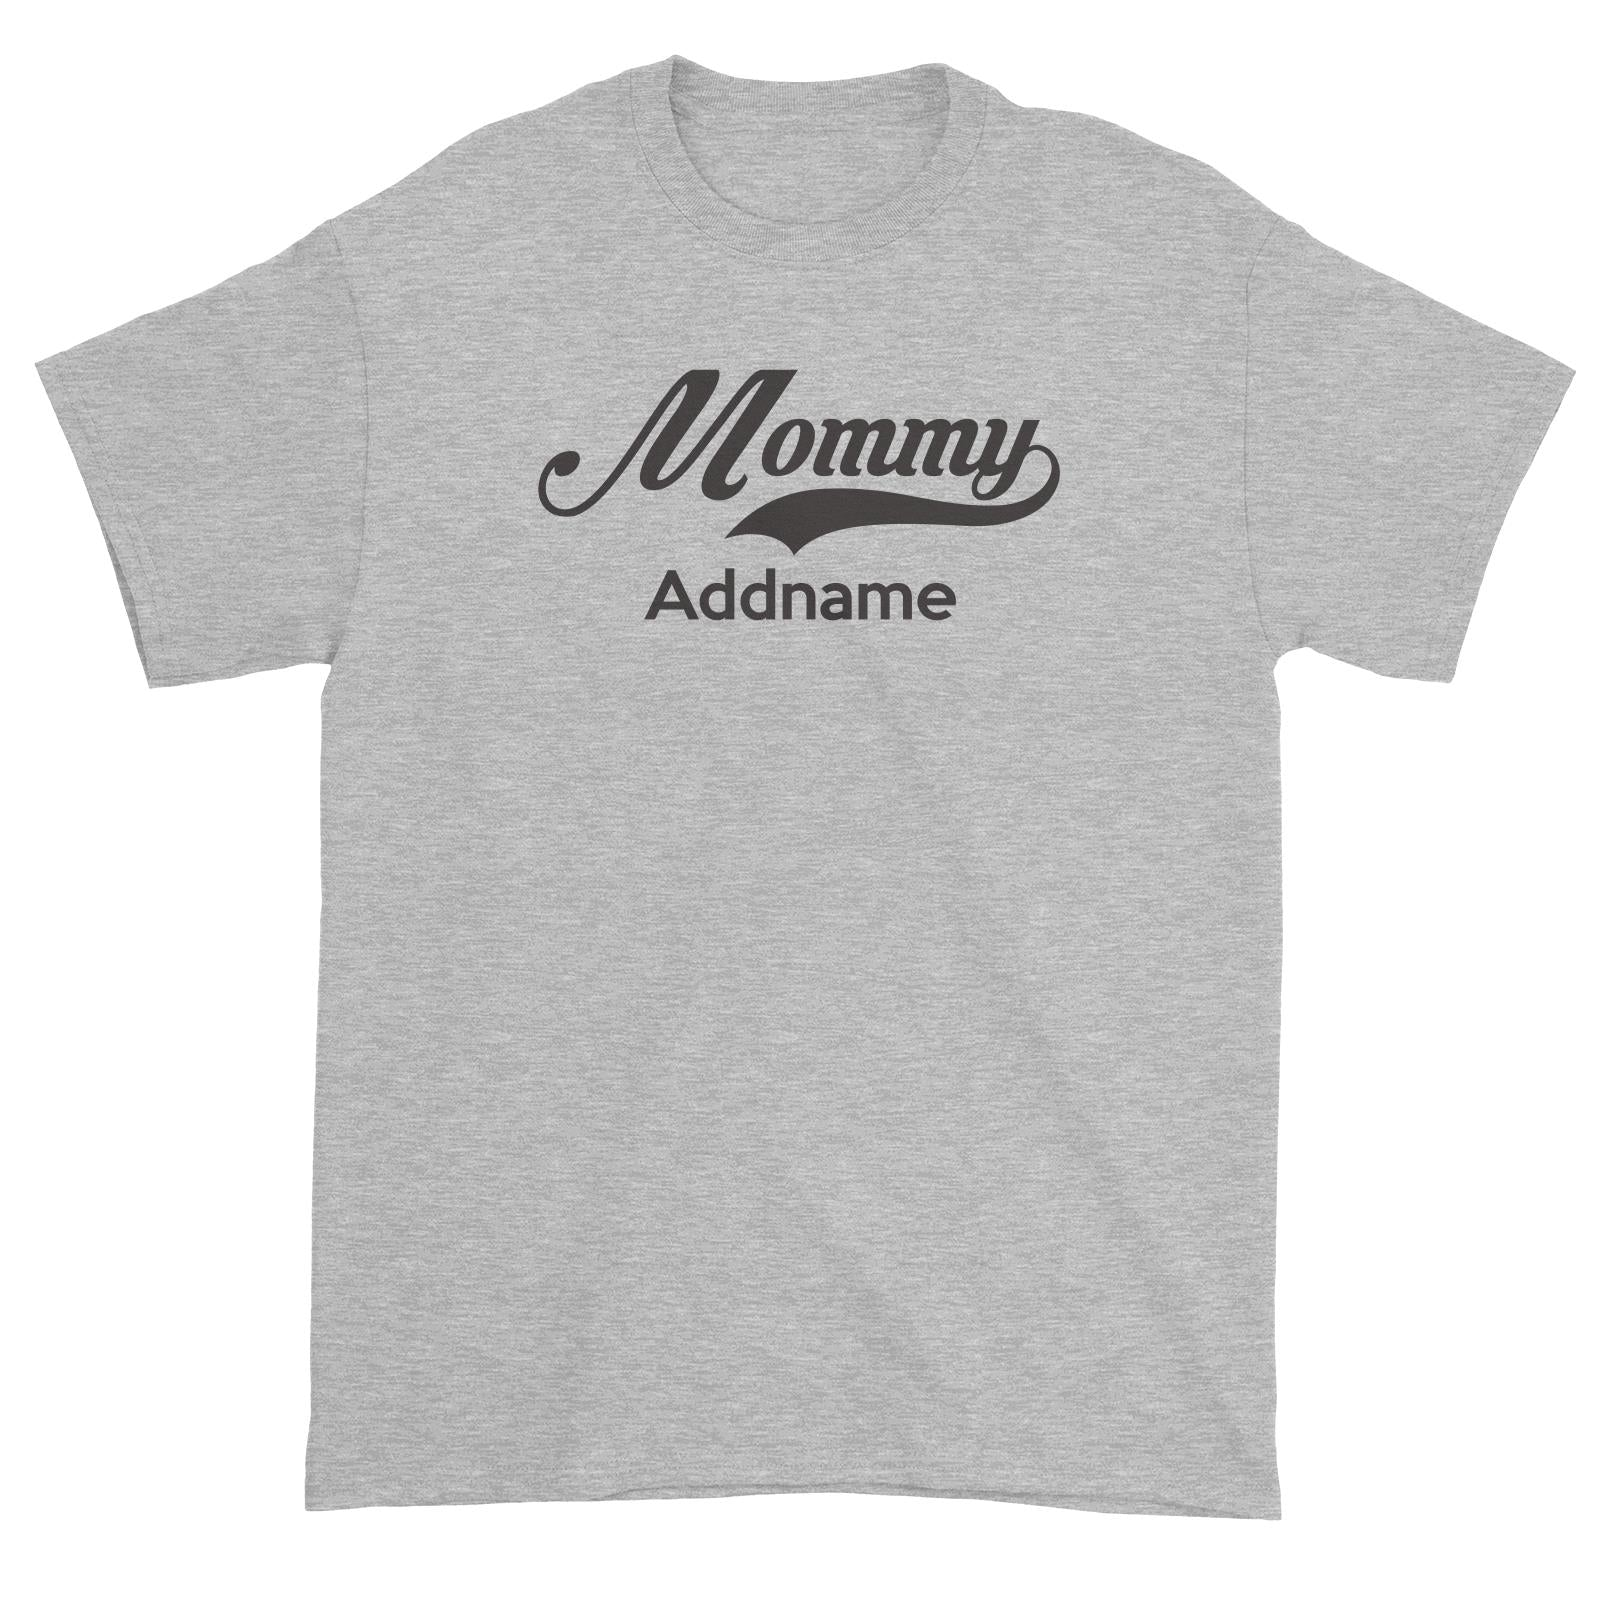 Retro Mommy Addname Unisex T-Shirt  Matching Family Personalizable Designs